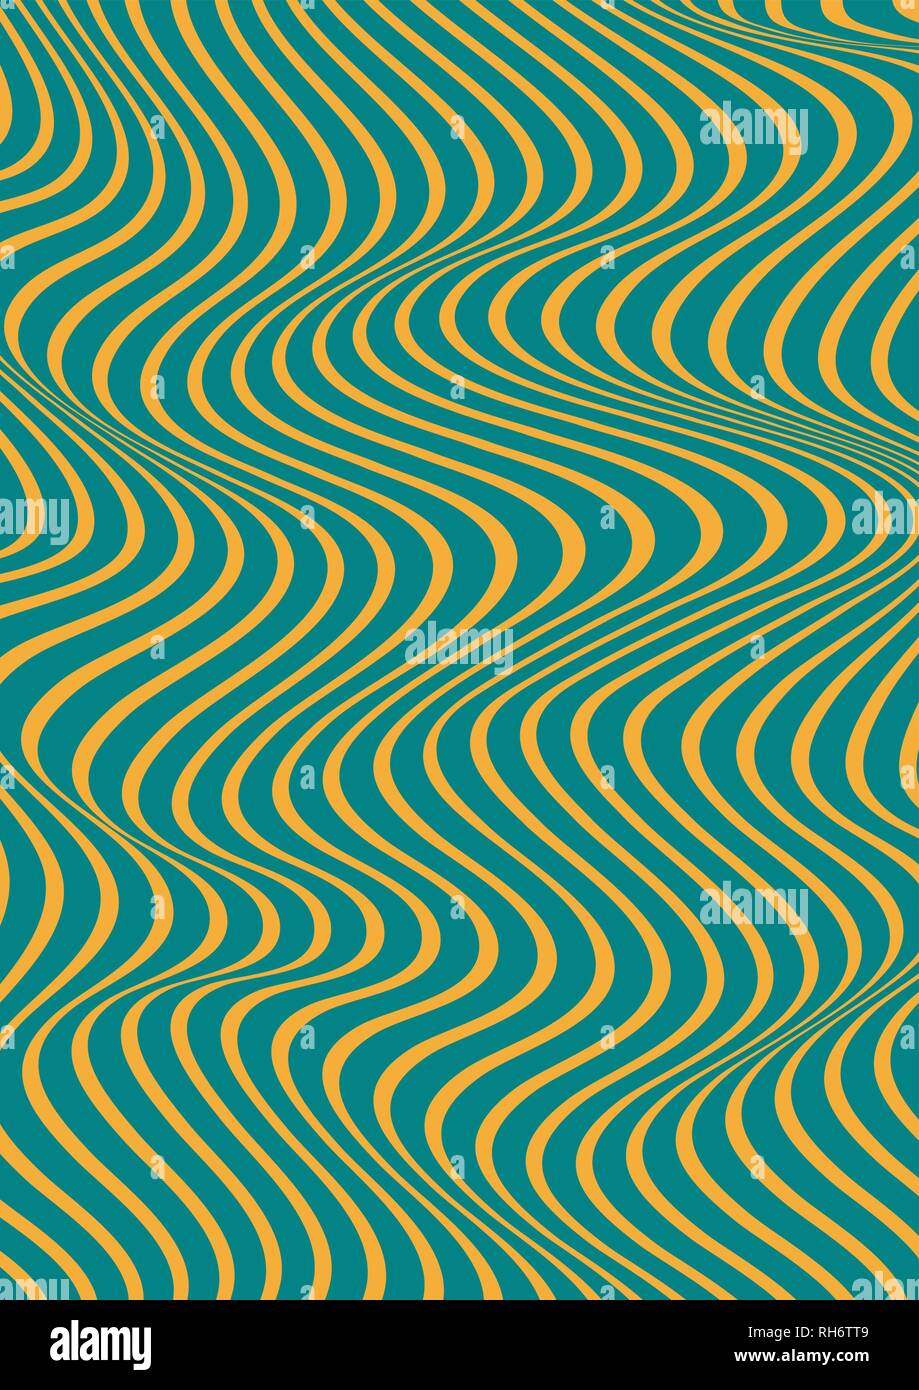 Abstract vertical wavy geometric pattern. Vector texture with yellow and blue or green waves, stripes. Dynamical 3D effect, illusion of movement. - Stock Vector